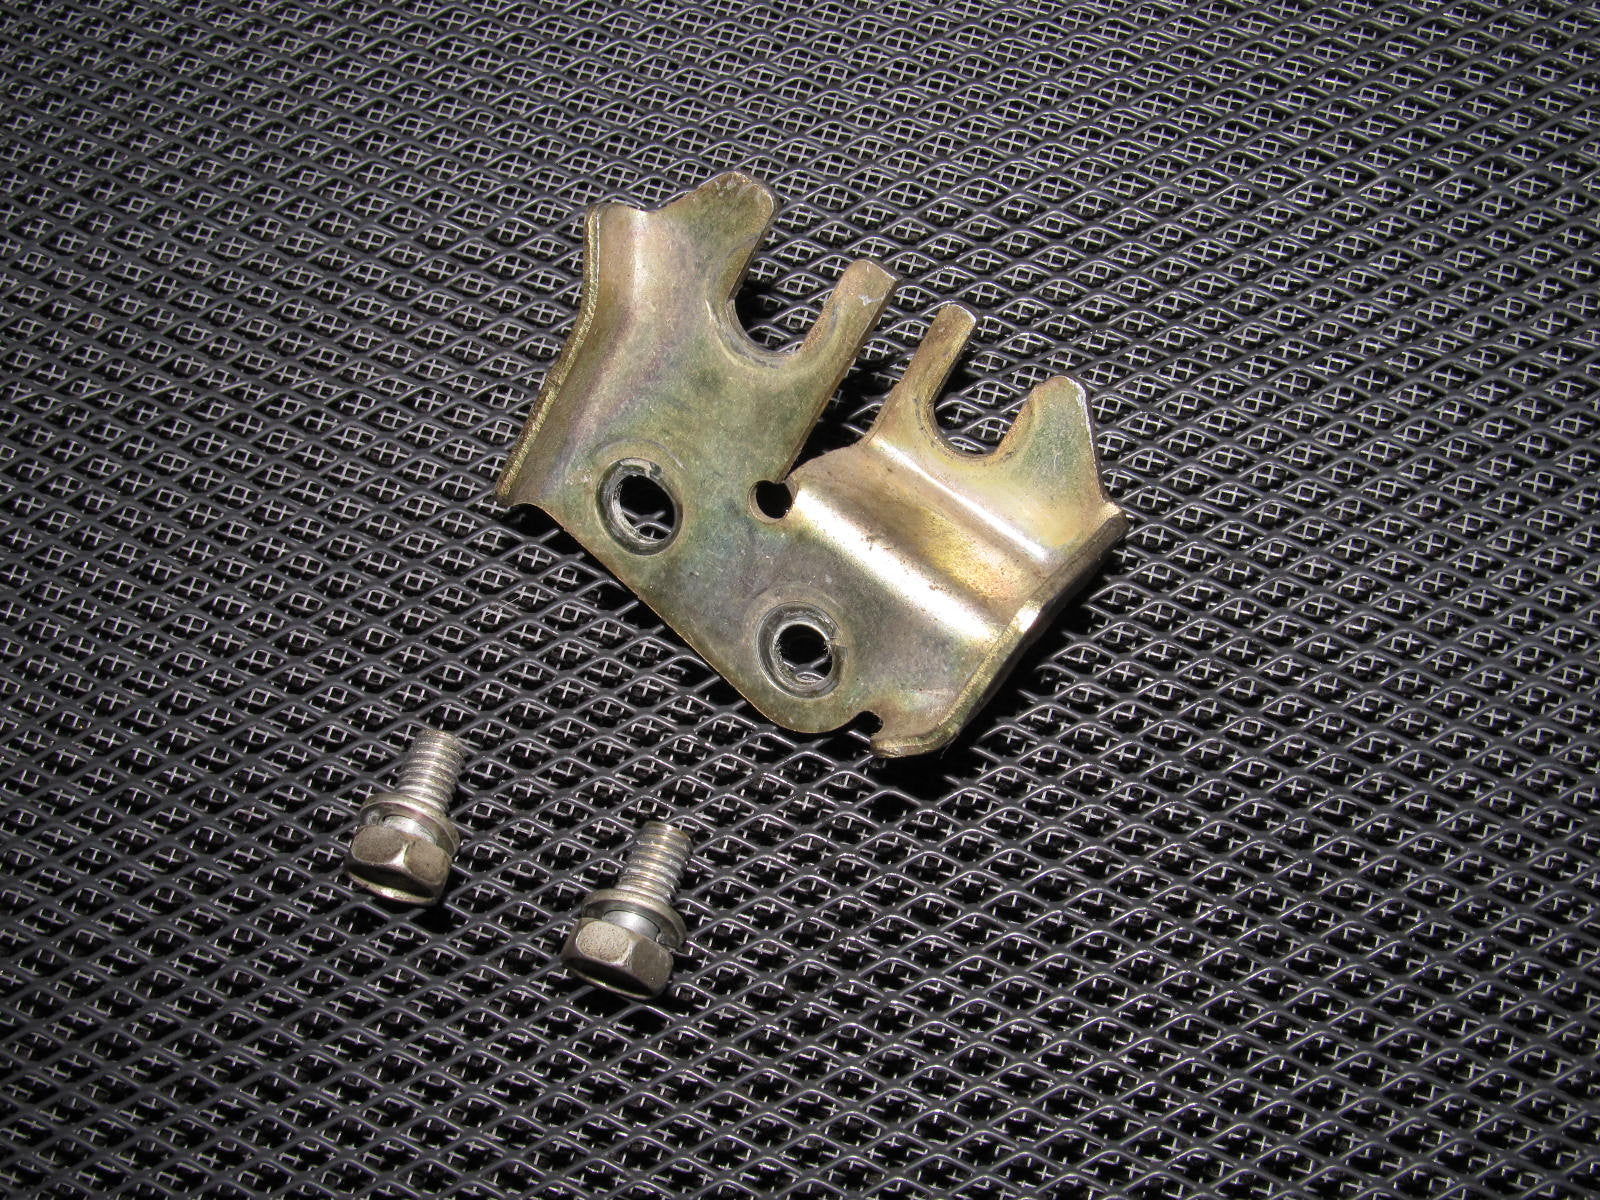 90-96 Nissan 300zx Throttle & Cruise Control Cable Holder Bracket